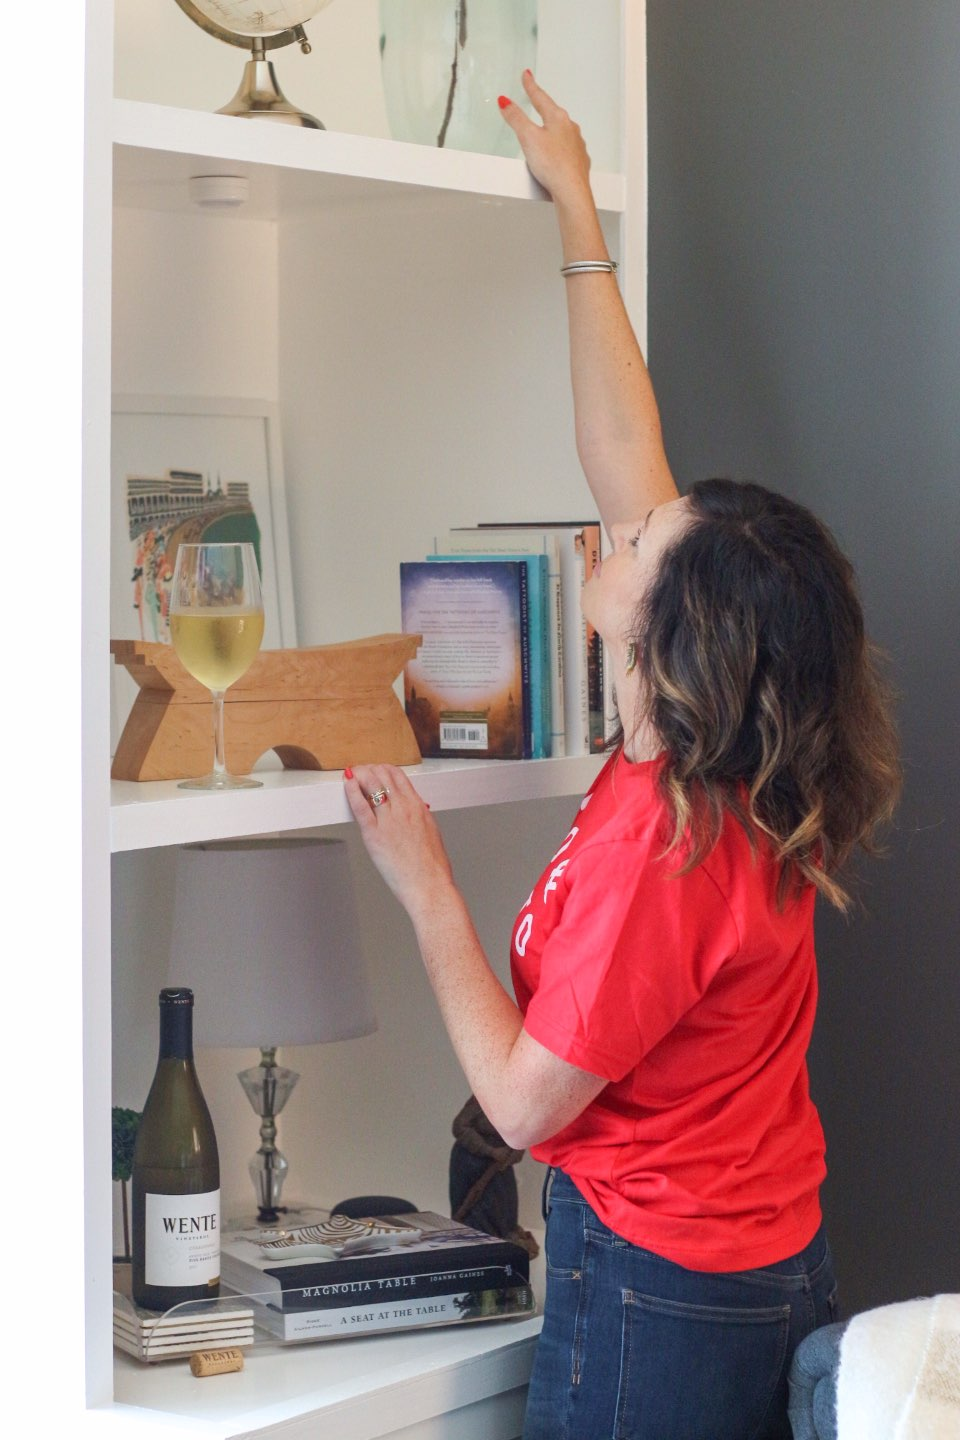 How I Make Time for Decorating with Wente Vineyards - I'm Fixin' To - @mbg0112 | How I Make Time for Decorating with Wente Vineyards by popular North Carolina lifestyle blog, I'm Fixin' To: image of a woman fixing a vase on a shelf in her home with a bottle and glass of Wente Vineyards wine close by.